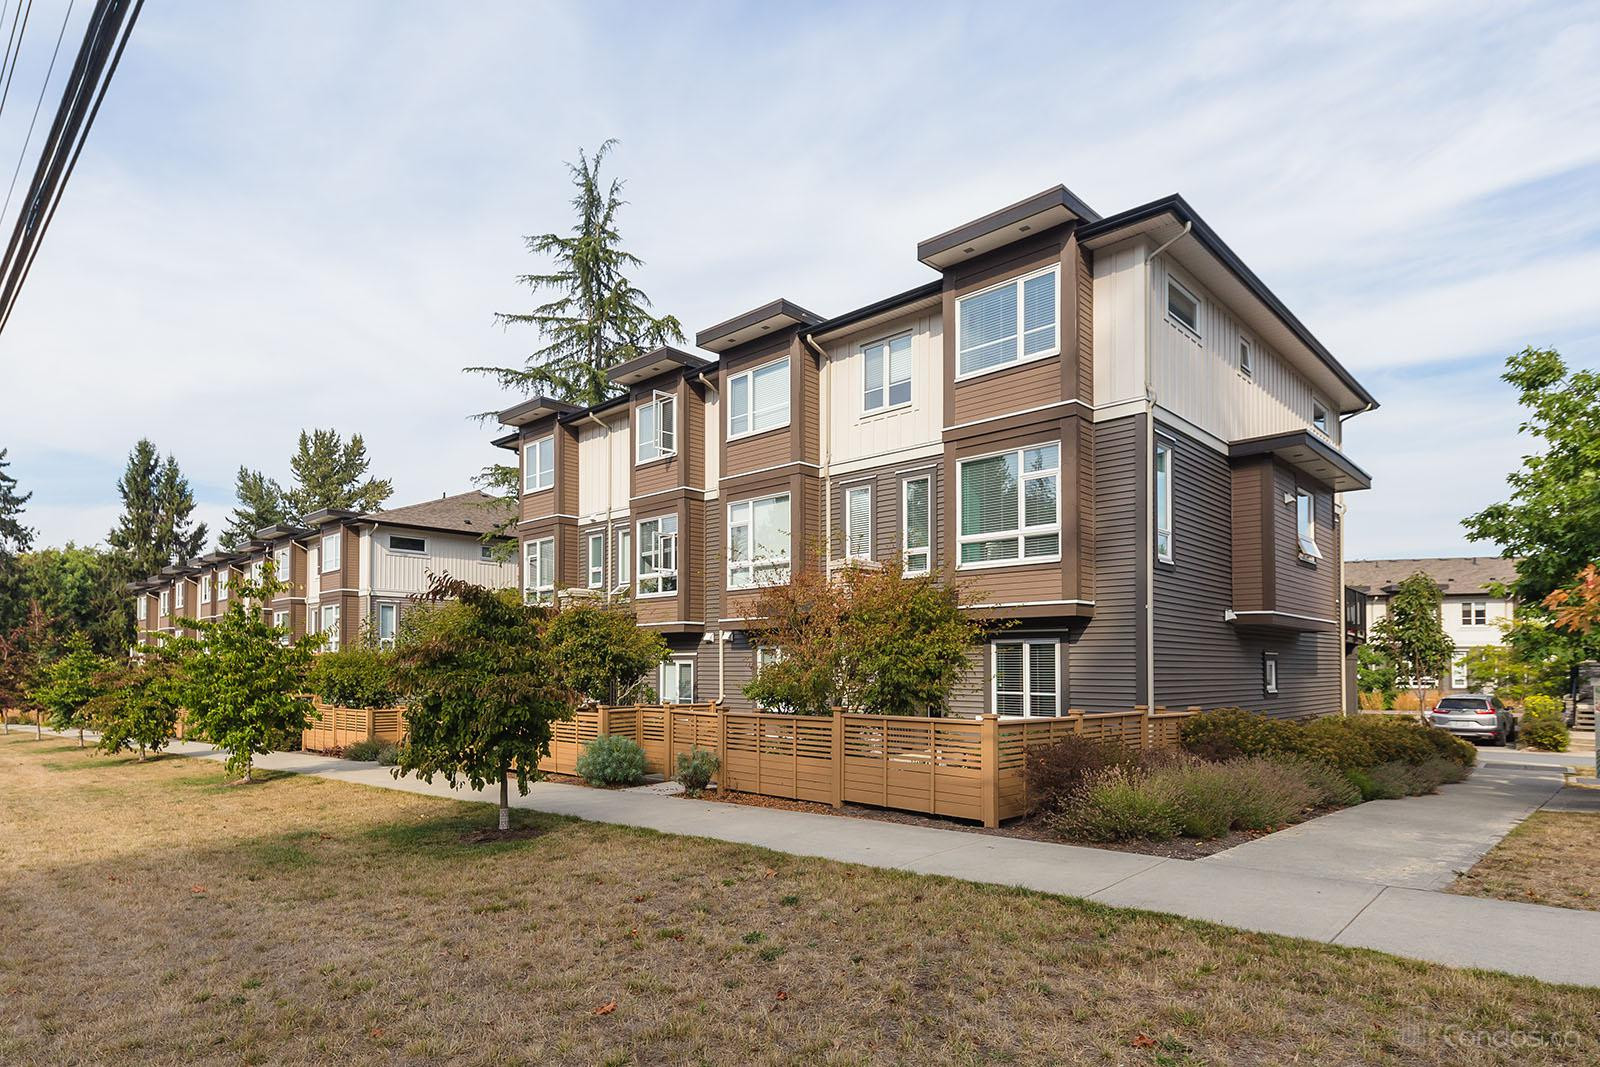 One44 at 5888 144 St, Surrey 1